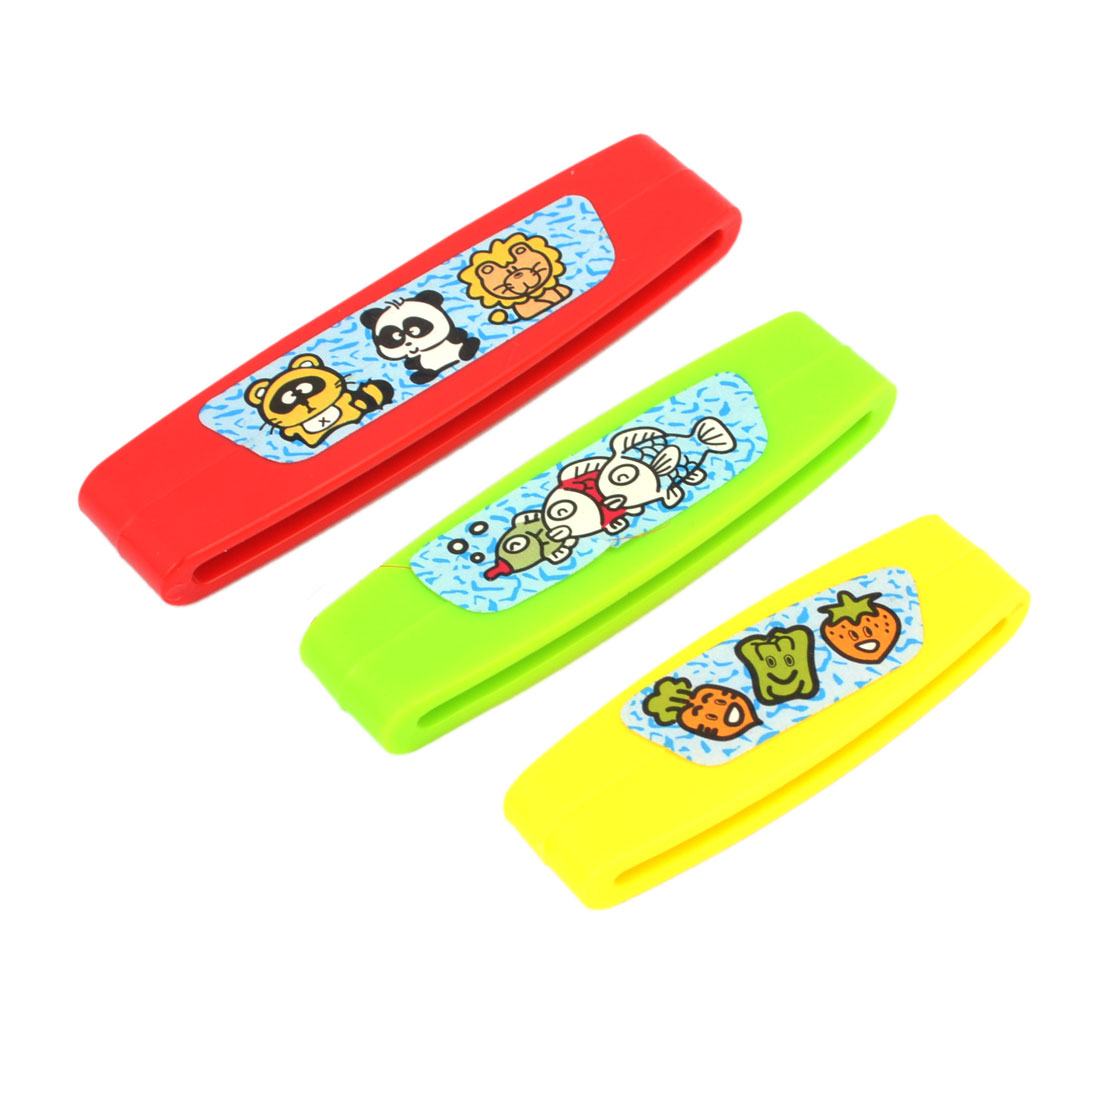 Household Home Bathroom Multi Purpose Plastic Toothpaste Tube Squeezers Creams Cosmetics Gels Squeezer Tool 3 Different Sizes Red Green Yellow